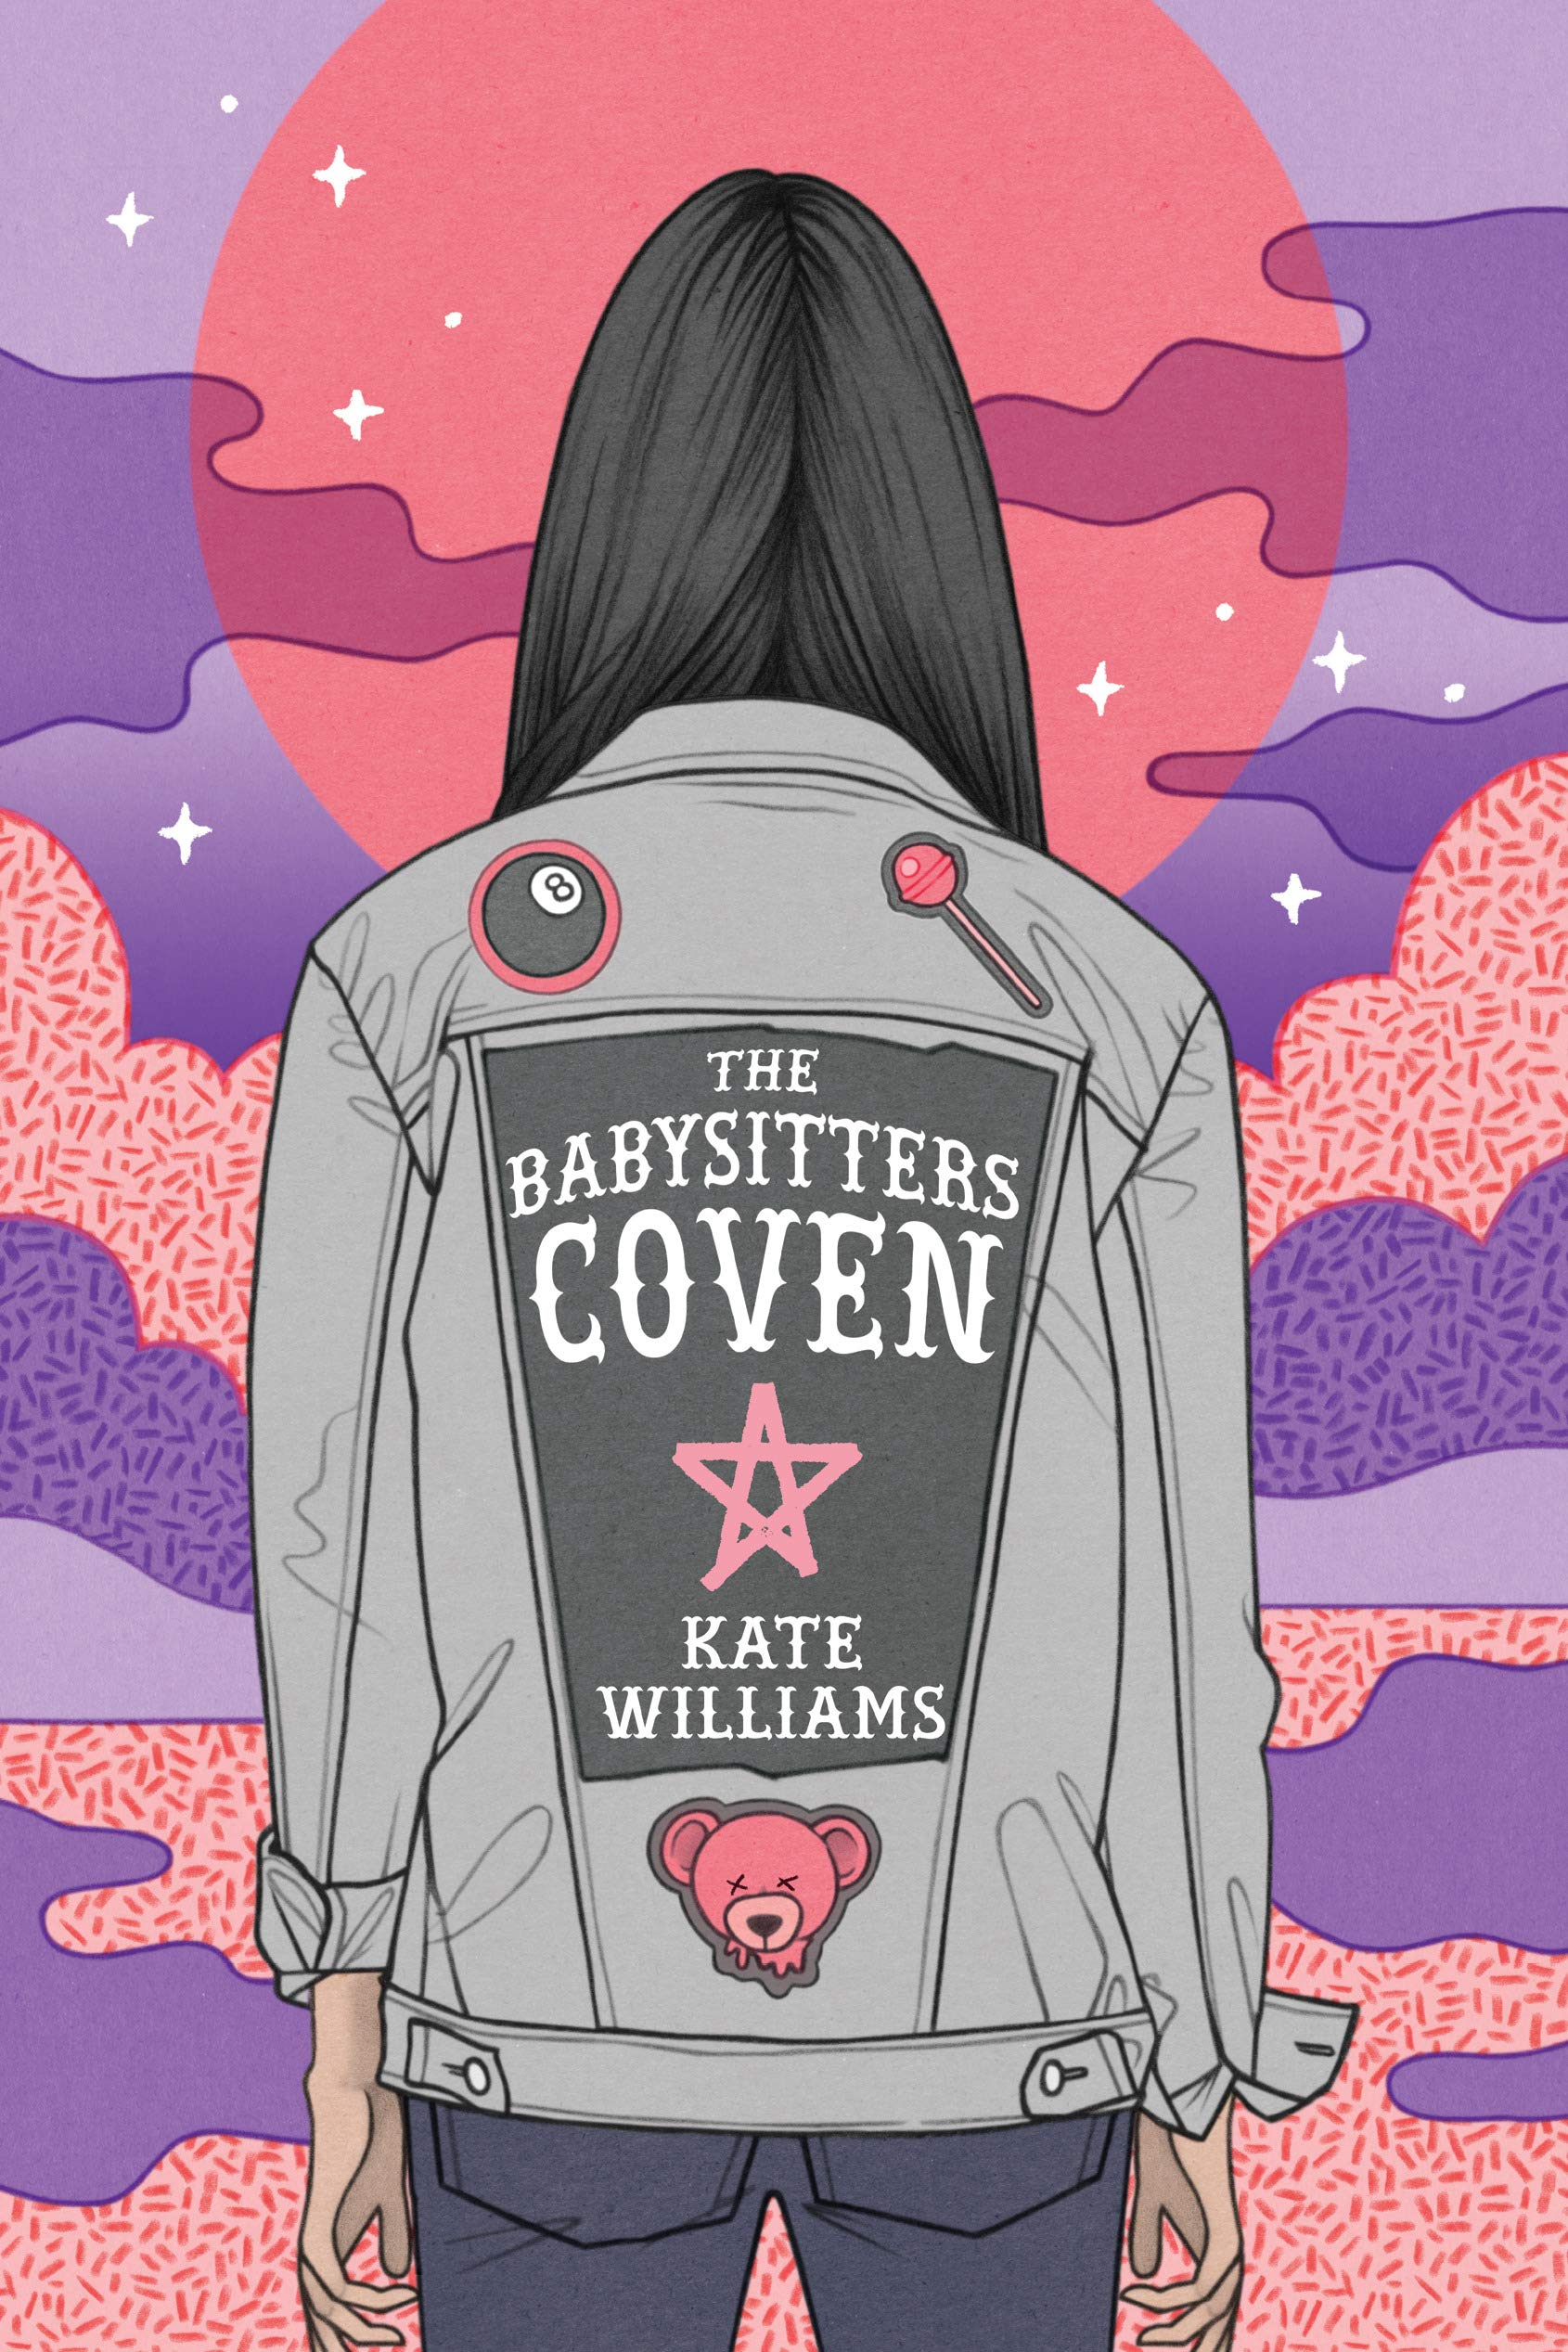 Amazon.com: The Babysitters Coven (9780525707370): Williams, Kate ...